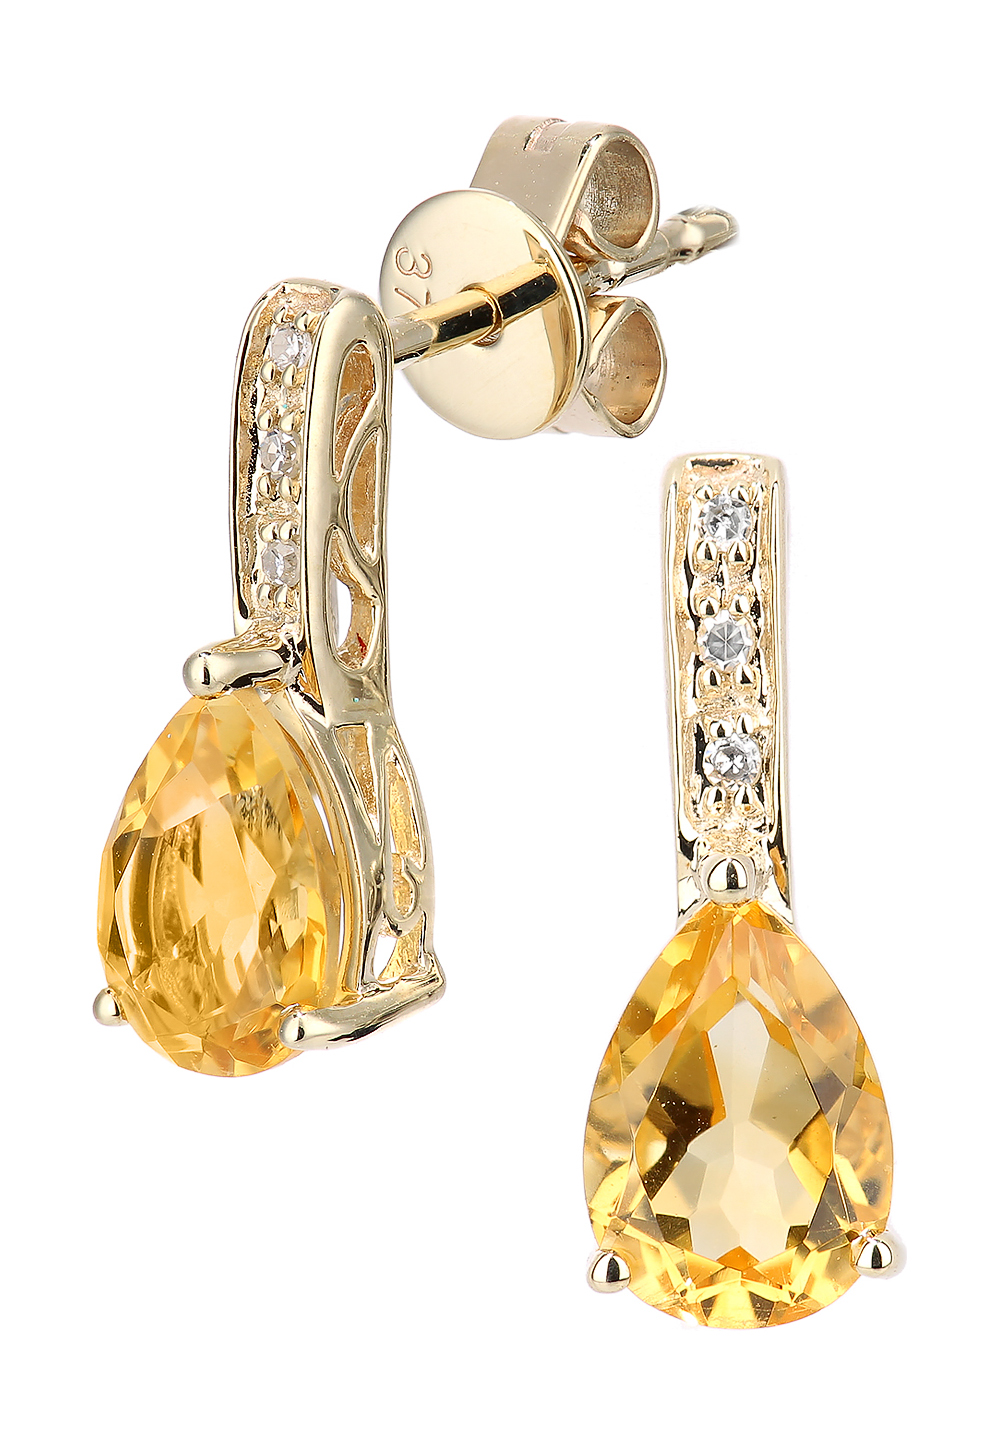 Rinani Ohrstecker, 375 Gelbgold, Diamant, Citrin | Schmuck > Ohrschmuck & Ohrringe > Ohrstecker | Gold | Rinani